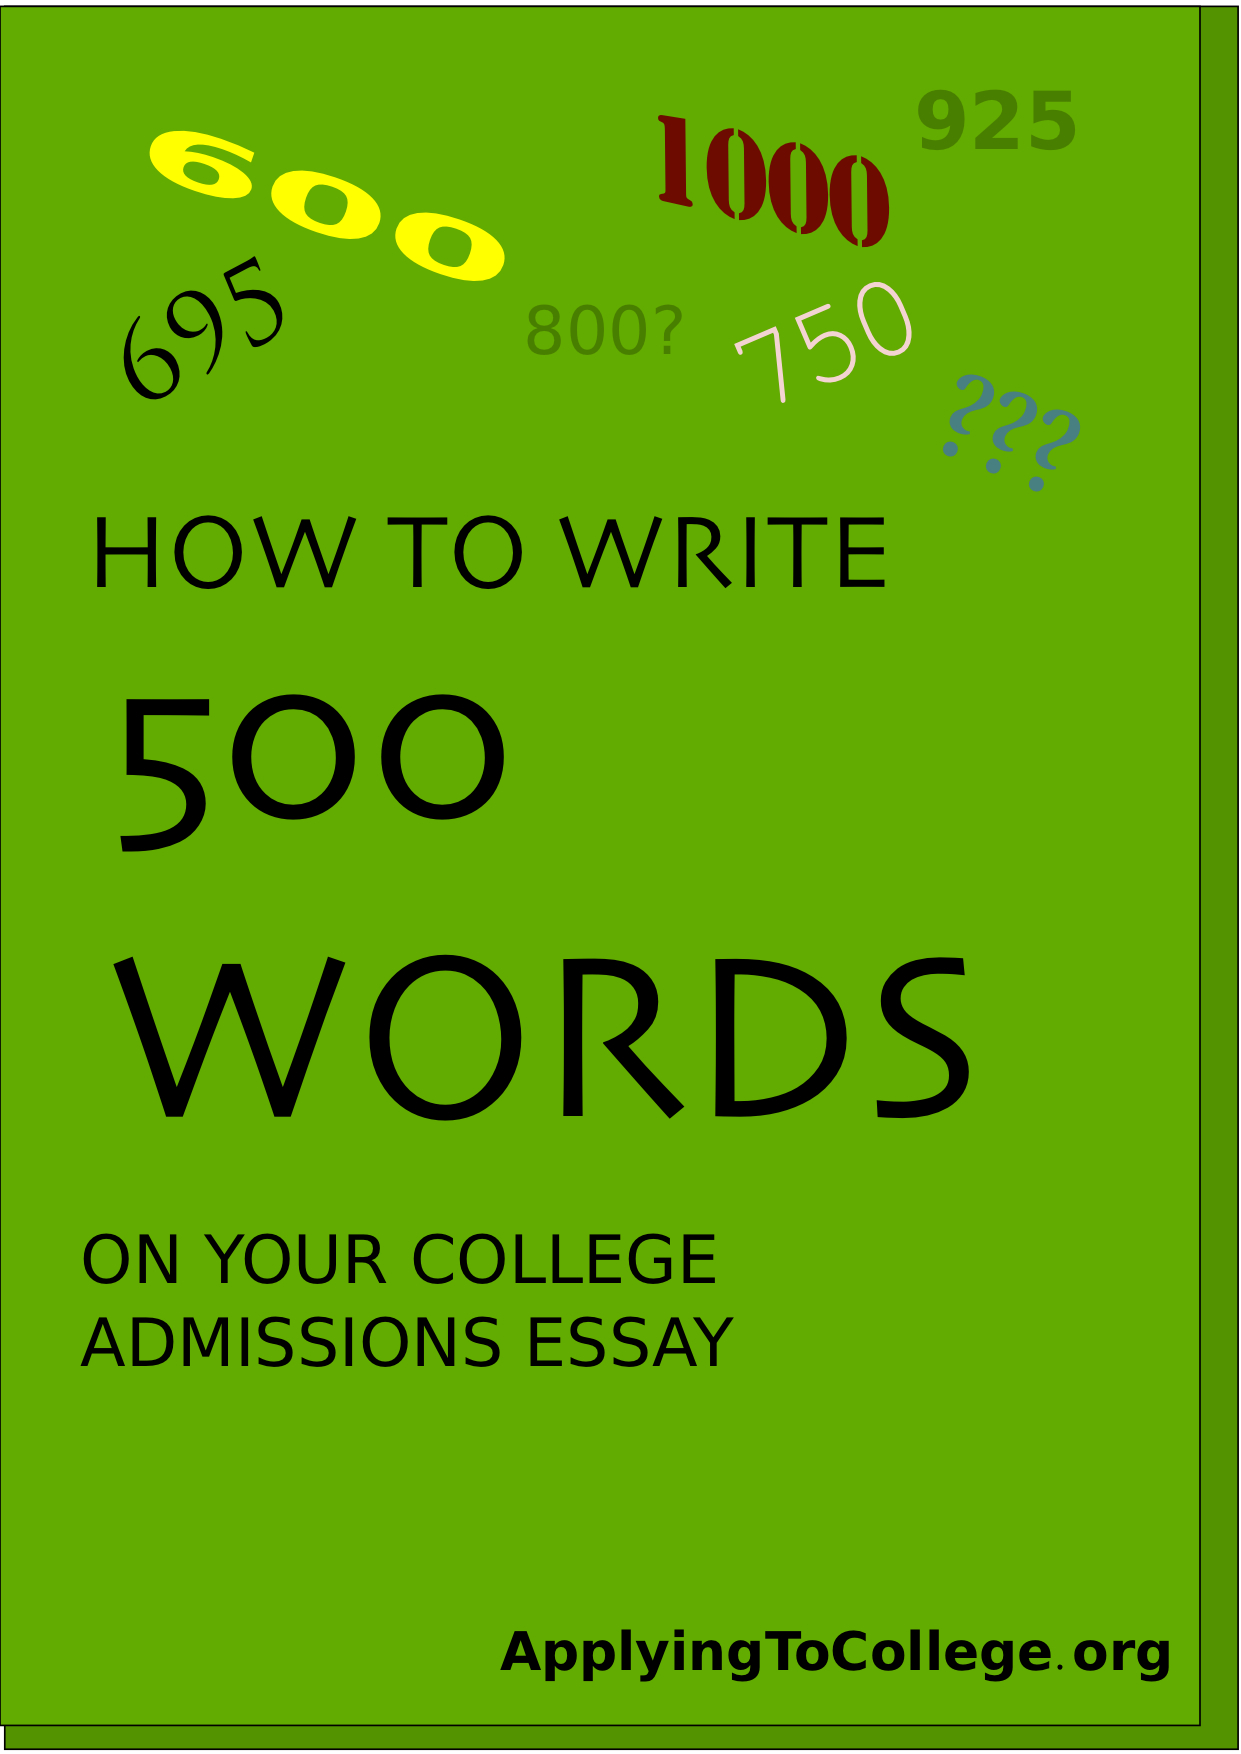 7 Tips On Writing a 500 Word Essay